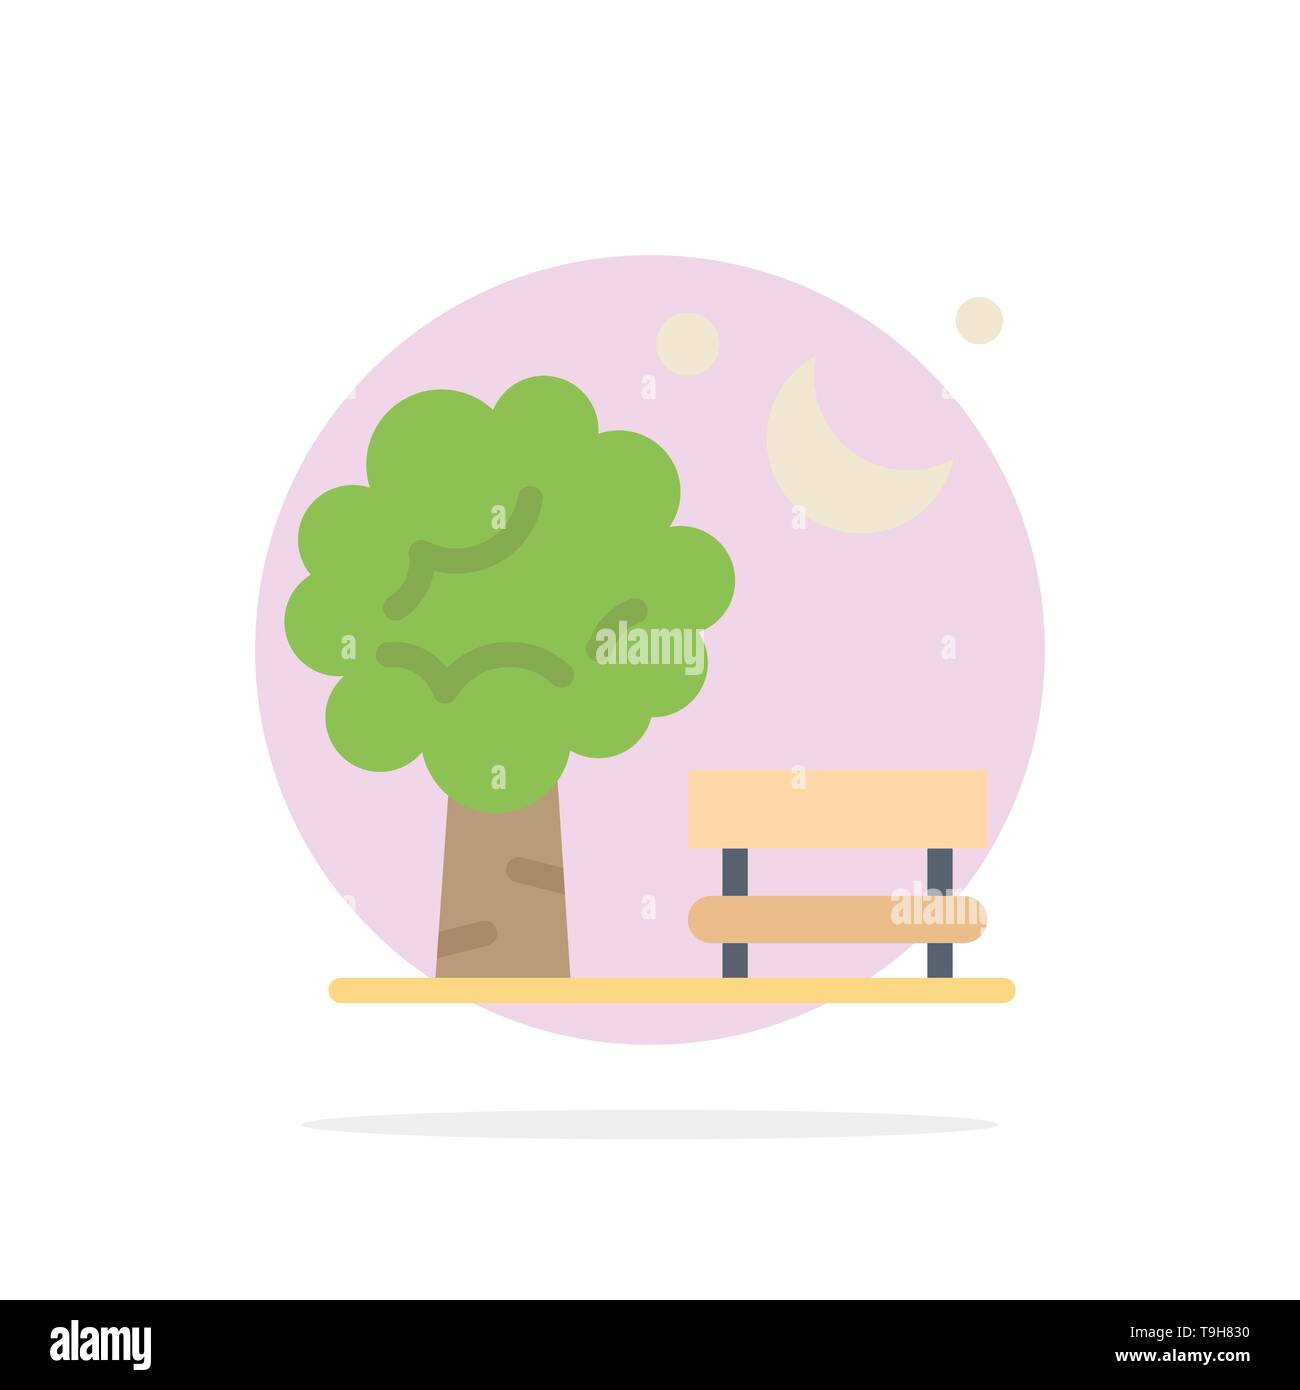 Bench, Chair, Park, Spring, Balloon Abstract Circle Background Flat color Icon - Stock Image